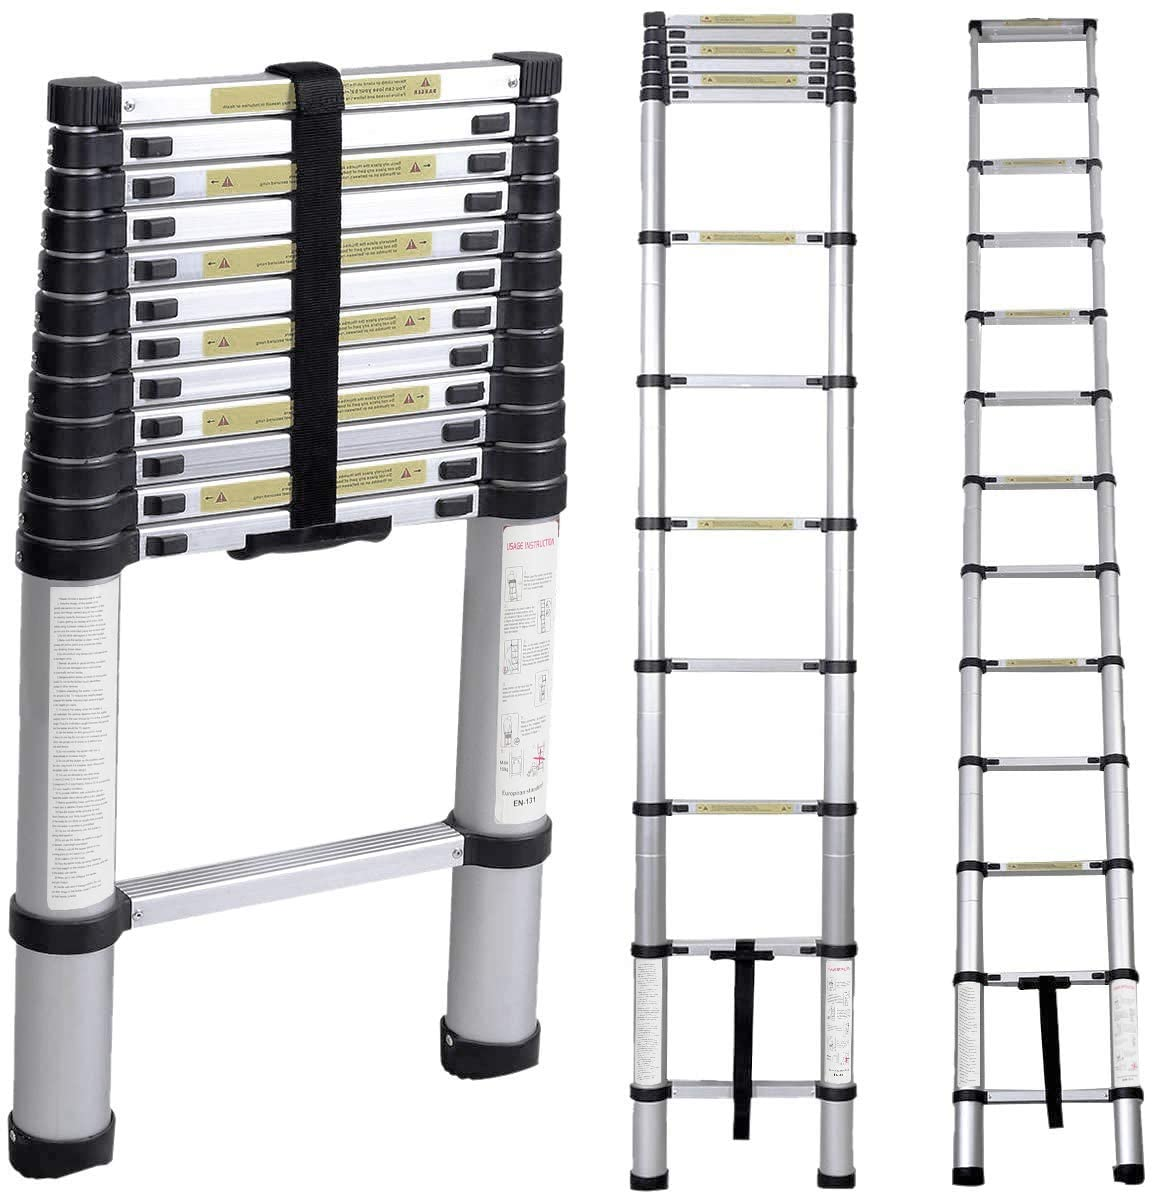 Soges 12.5ft Telescoping Extension Ladder,12 Steps Aluminum Extendable Telescopic Ladder with Spring Loaded Locking Mechanism Non-Slip Ribbing 330 Pound Capacity EN131 Certified, KS-JF-001